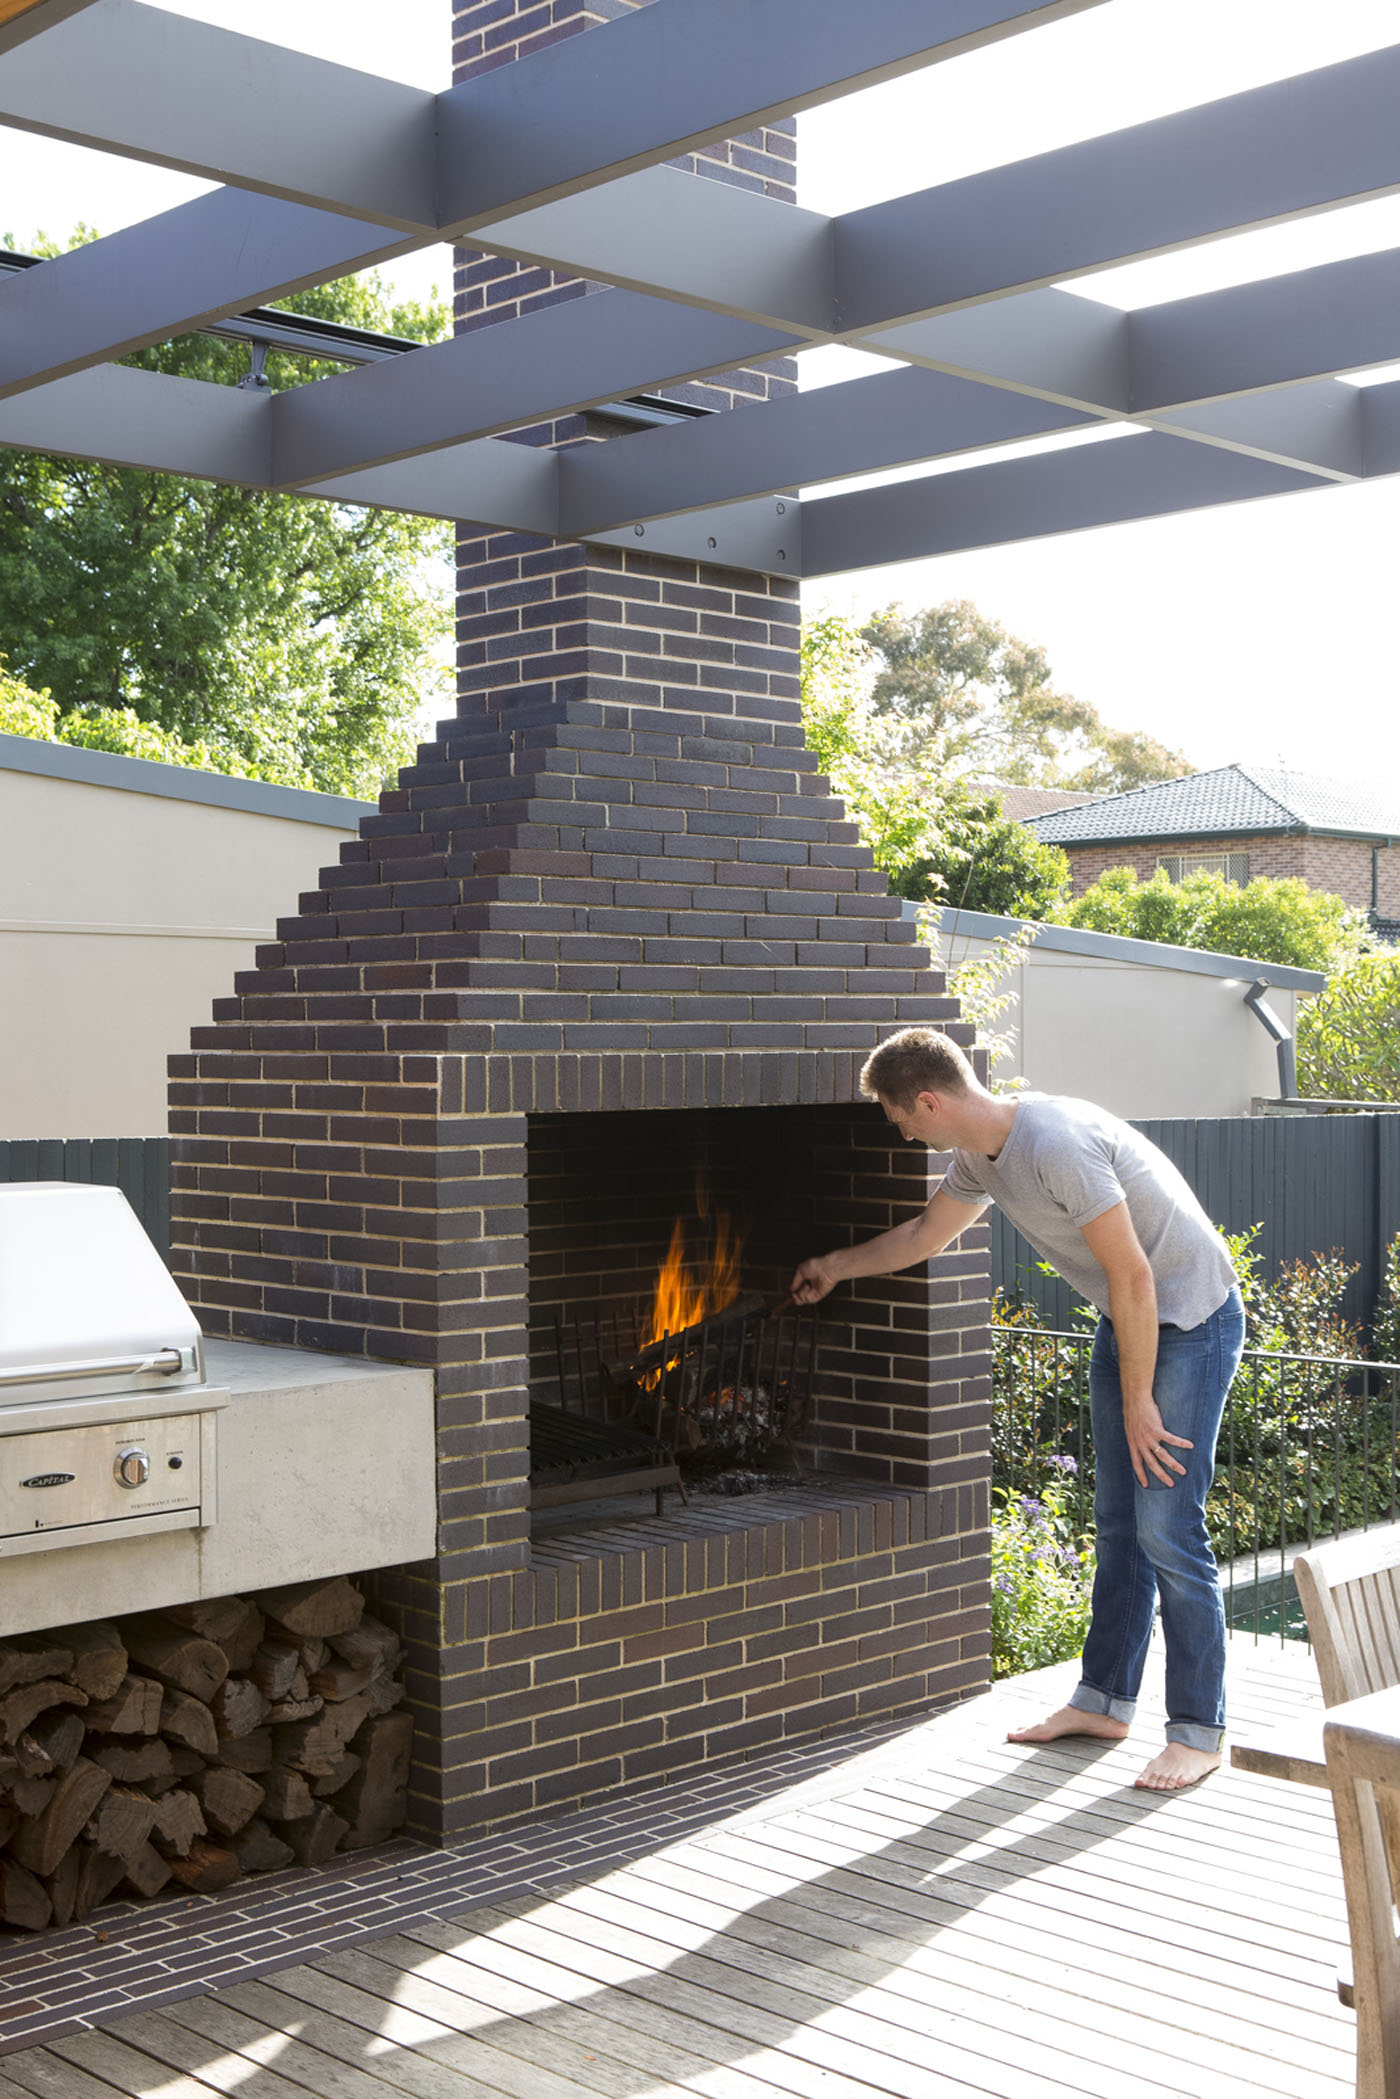 Denney House by Sam Crawford Architects, outdoor brick fireplace connected to barbecue area